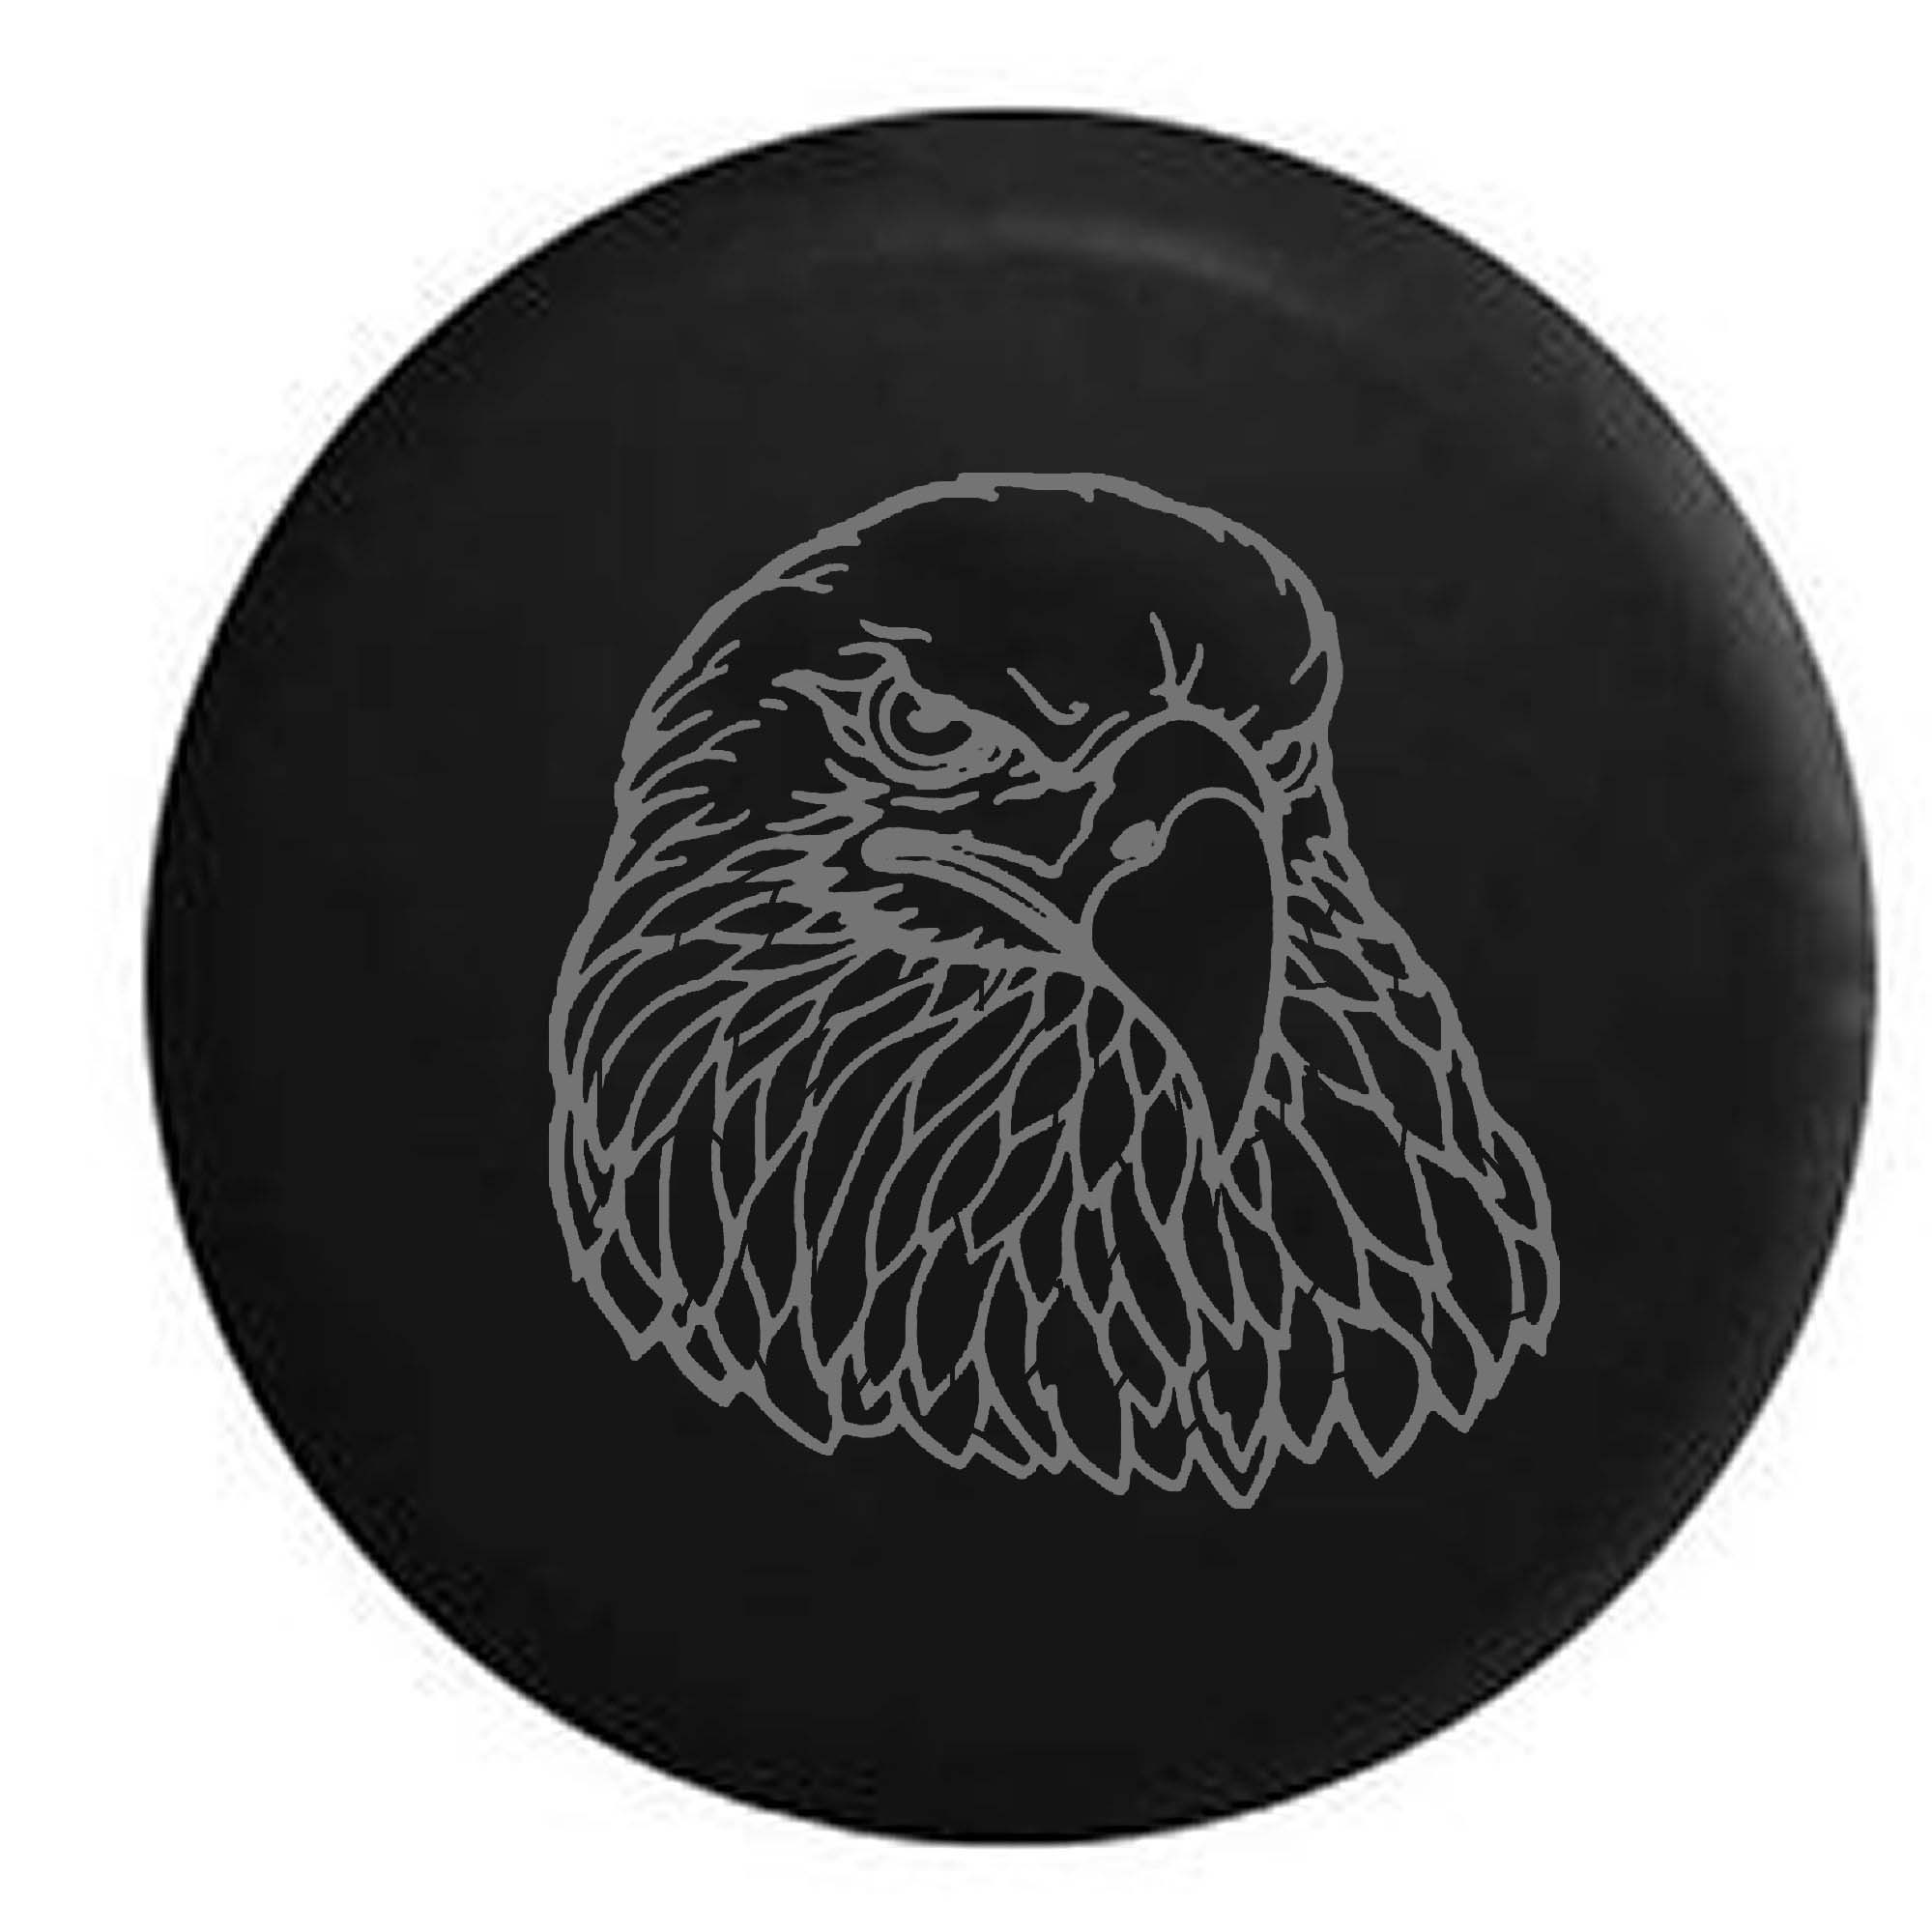 American Eagle Patriotic Spare Tire Cover Vinyl Stealth B...